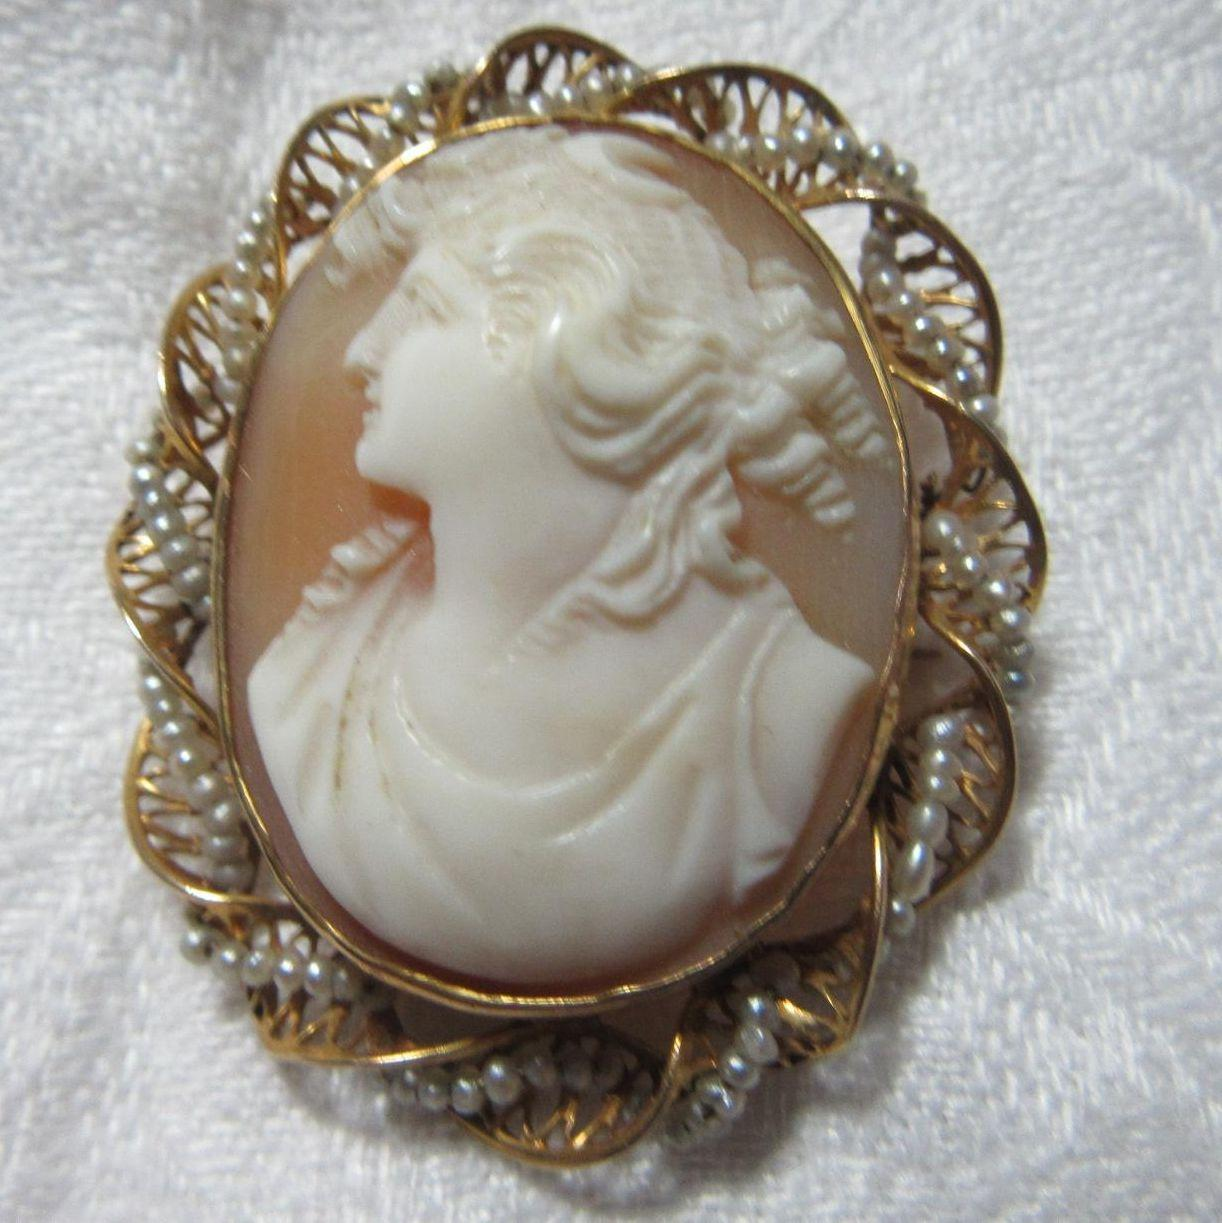 Antique Cameo Brooch 10K Gold & Seed Pearls Fine Jewelry